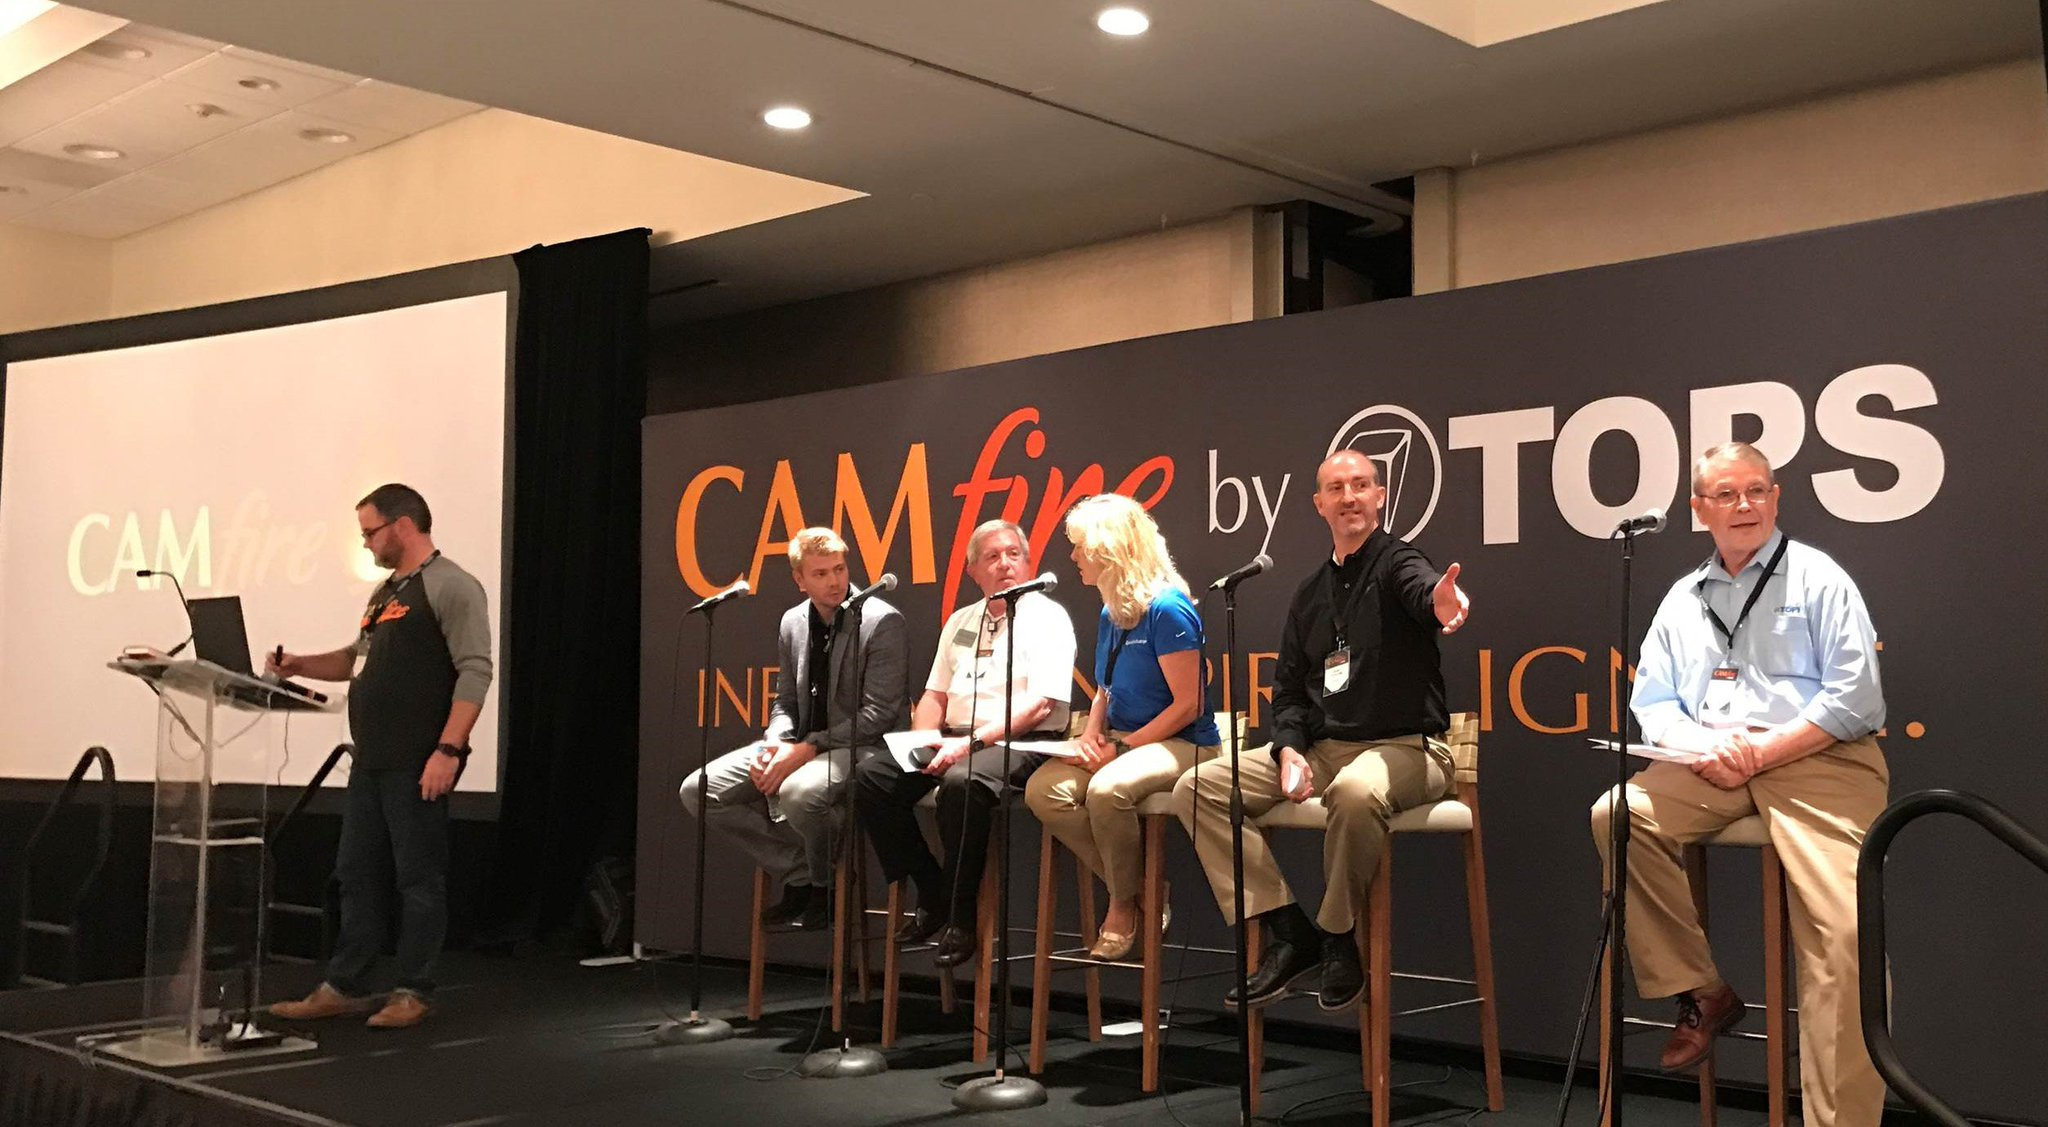 AvidXchange's Jan Skinner participates in a keynote panel discussion at @TOPSSoft's 2017 CAMfire Conference in Orlando! #CAMfire17 https://t.co/iVczpMvq7O